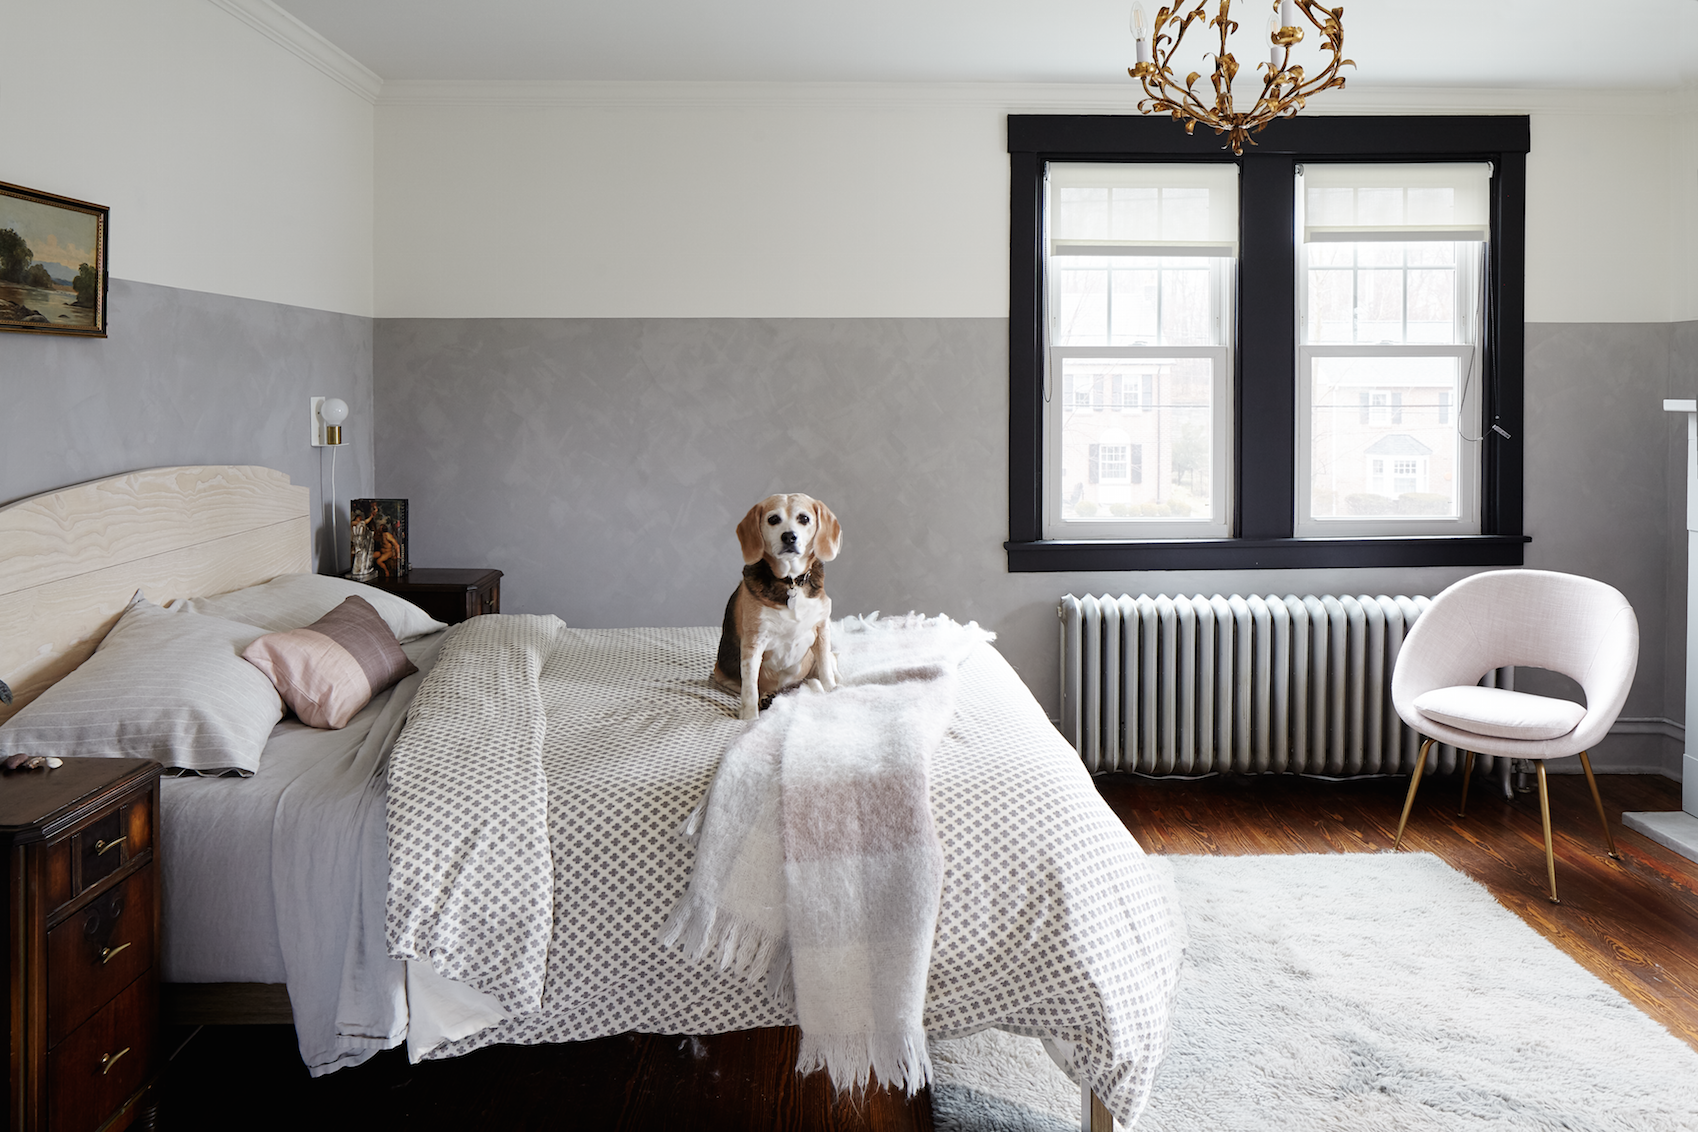 One Thing I Really Love About Writing For Design*Sponge Is The Storytelling  We Do Through Home Tours. I Love Learning About What Went Into A Room  Renovation ...